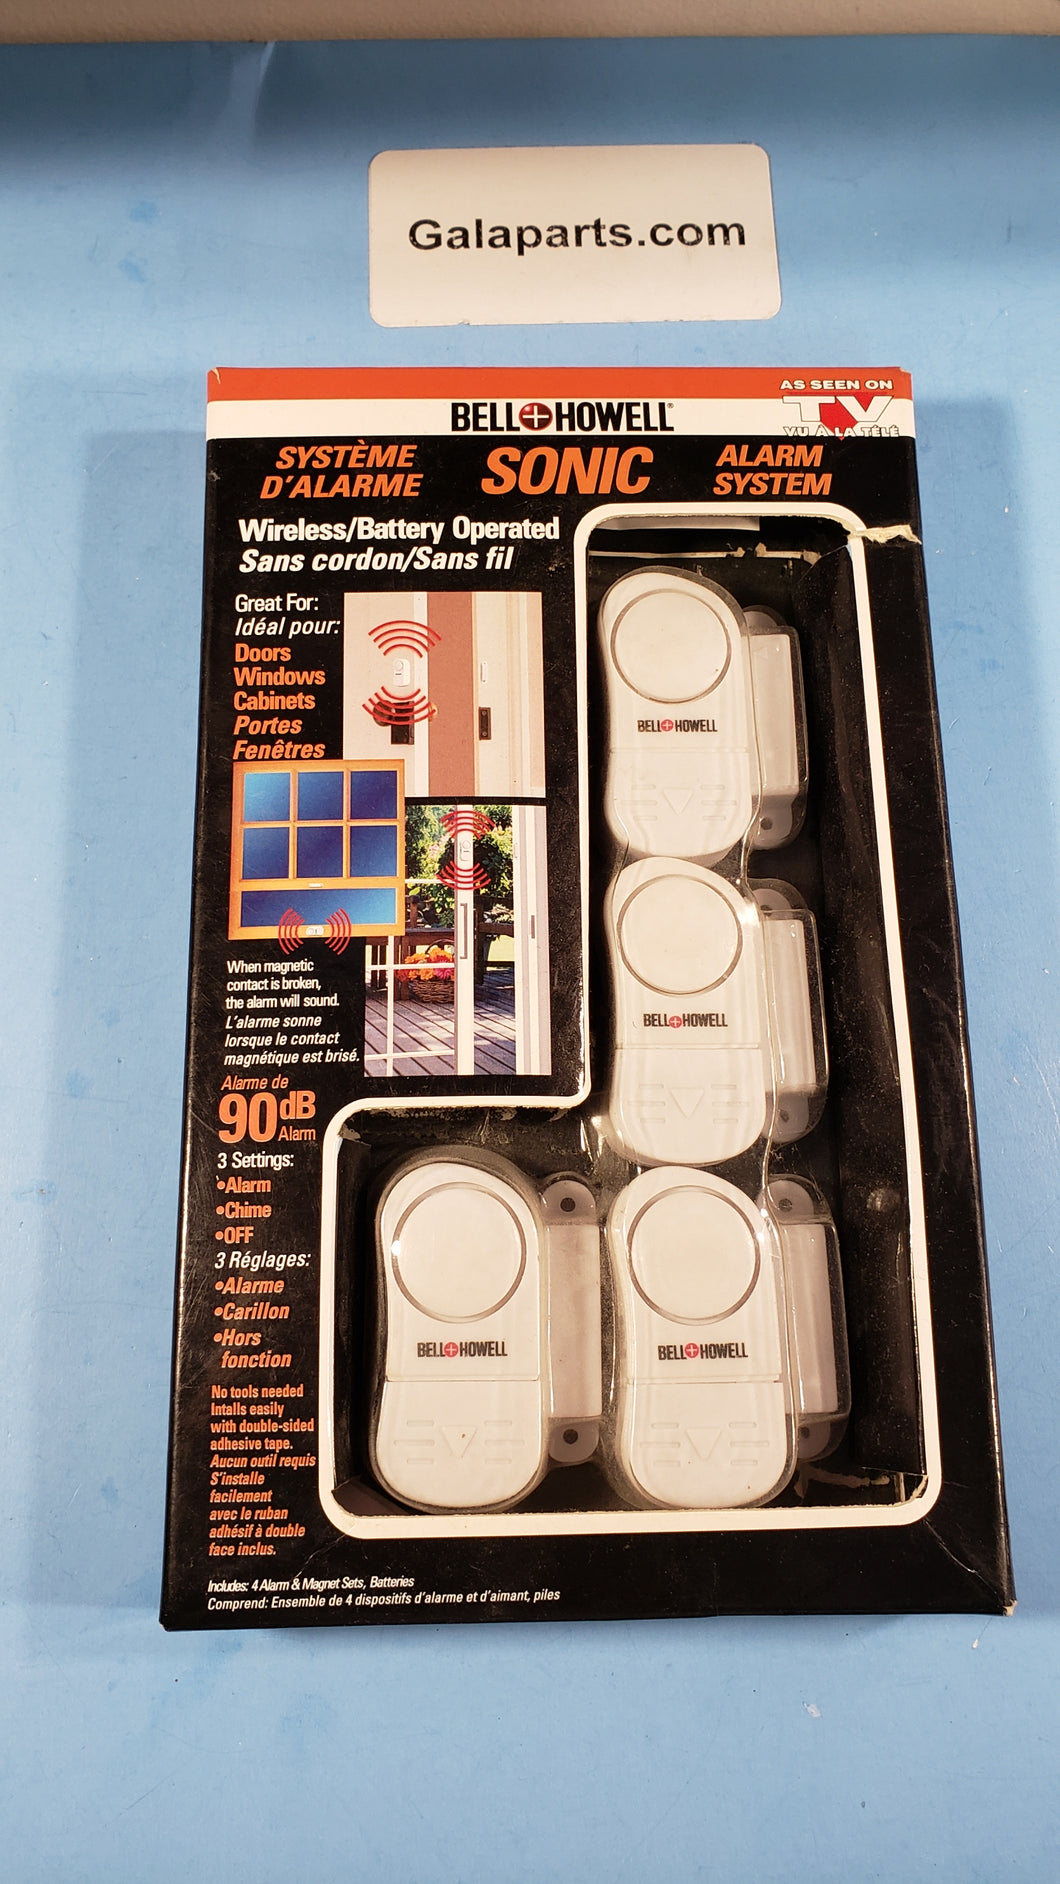 Wireless battery operated door window alarm chime system Bell Howell - Electronics TV Parts - GalaParts.com